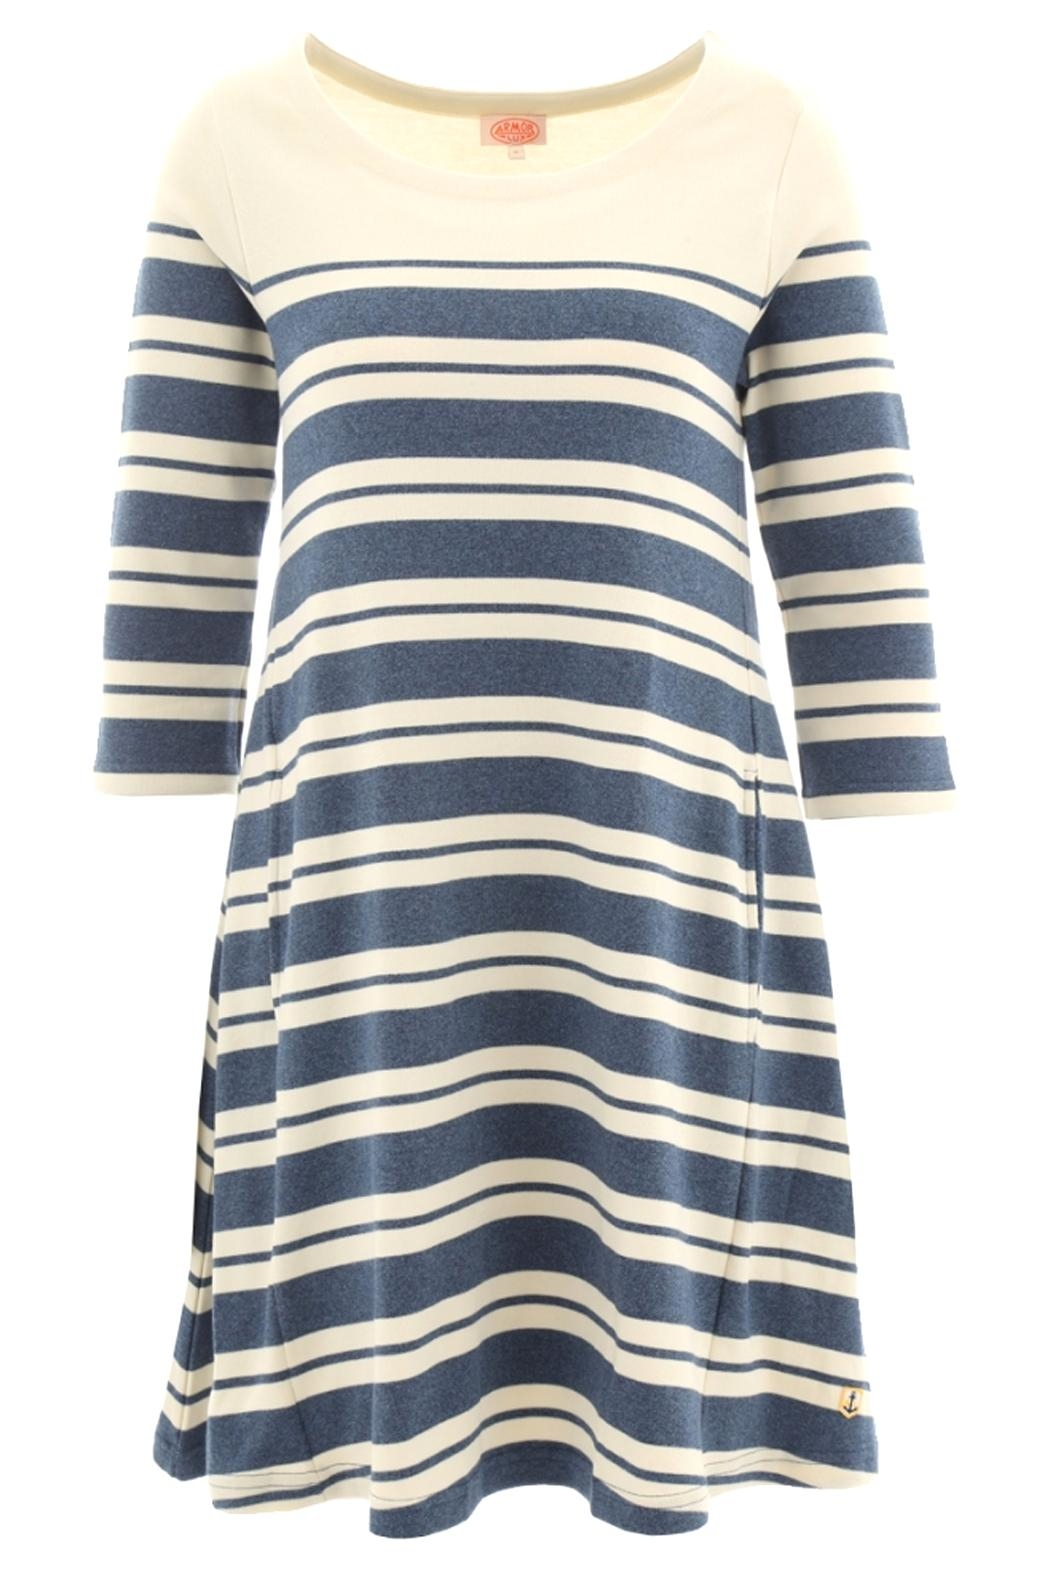 Armor Lux Heritage Striped Dress - Front Cropped Image